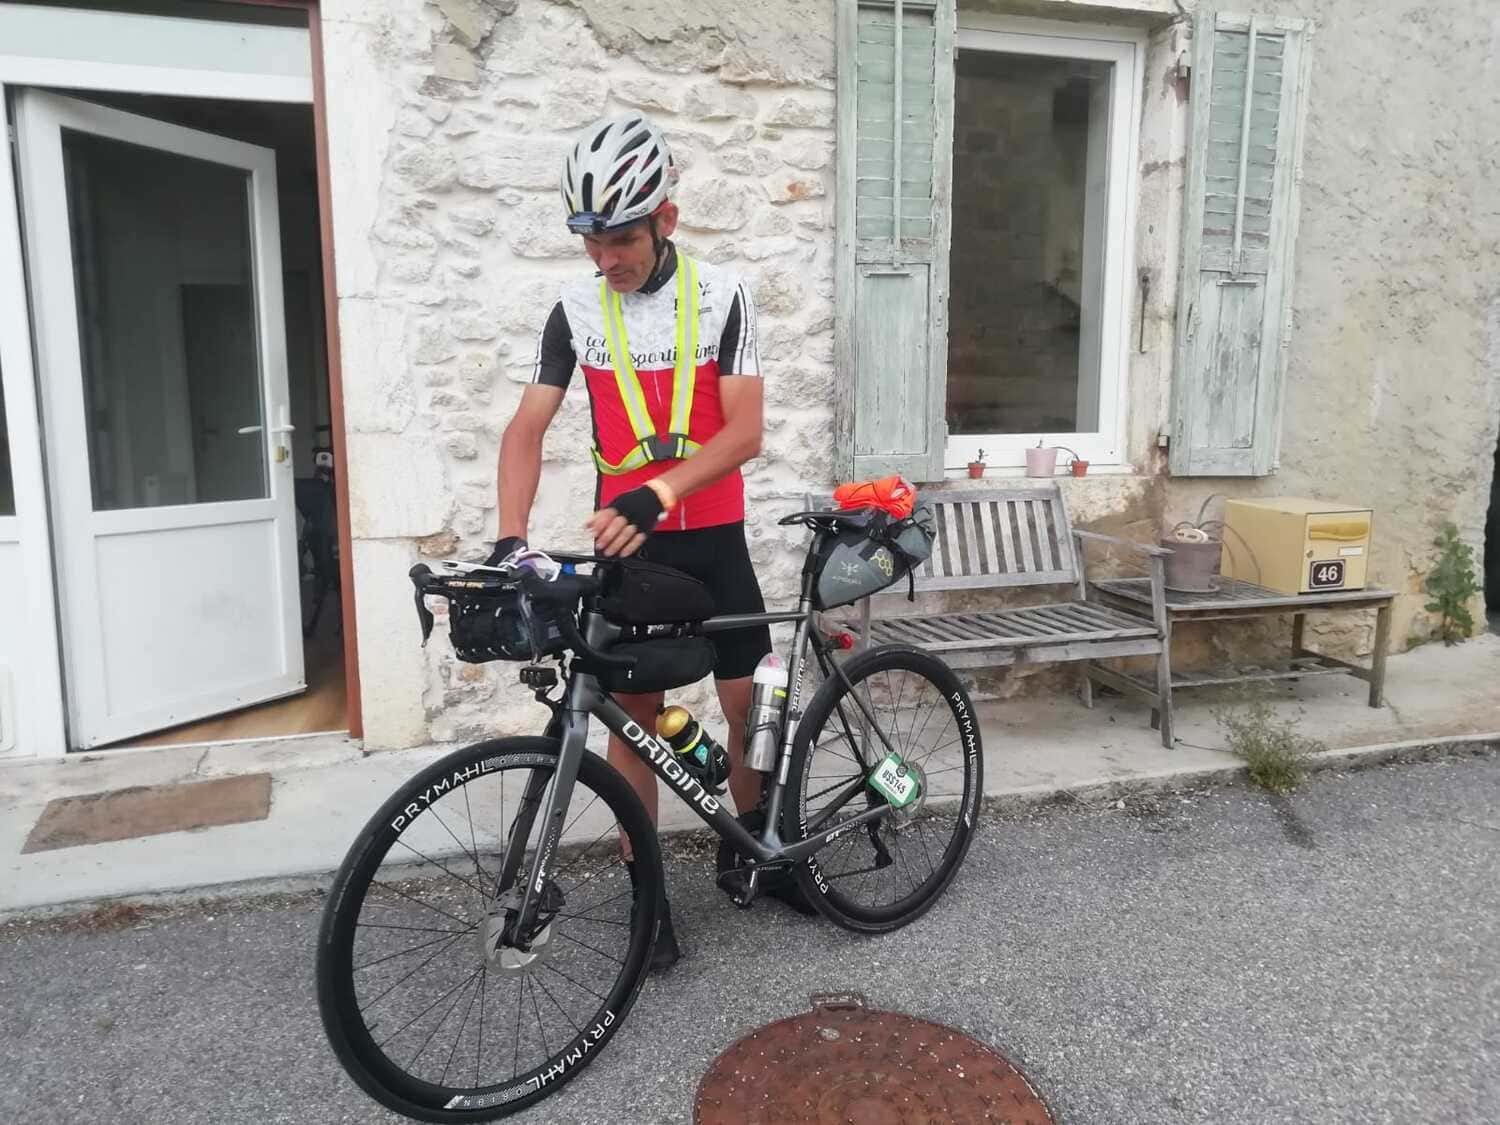 Race Across France RAF ultra-cycling route Patrick Gilles